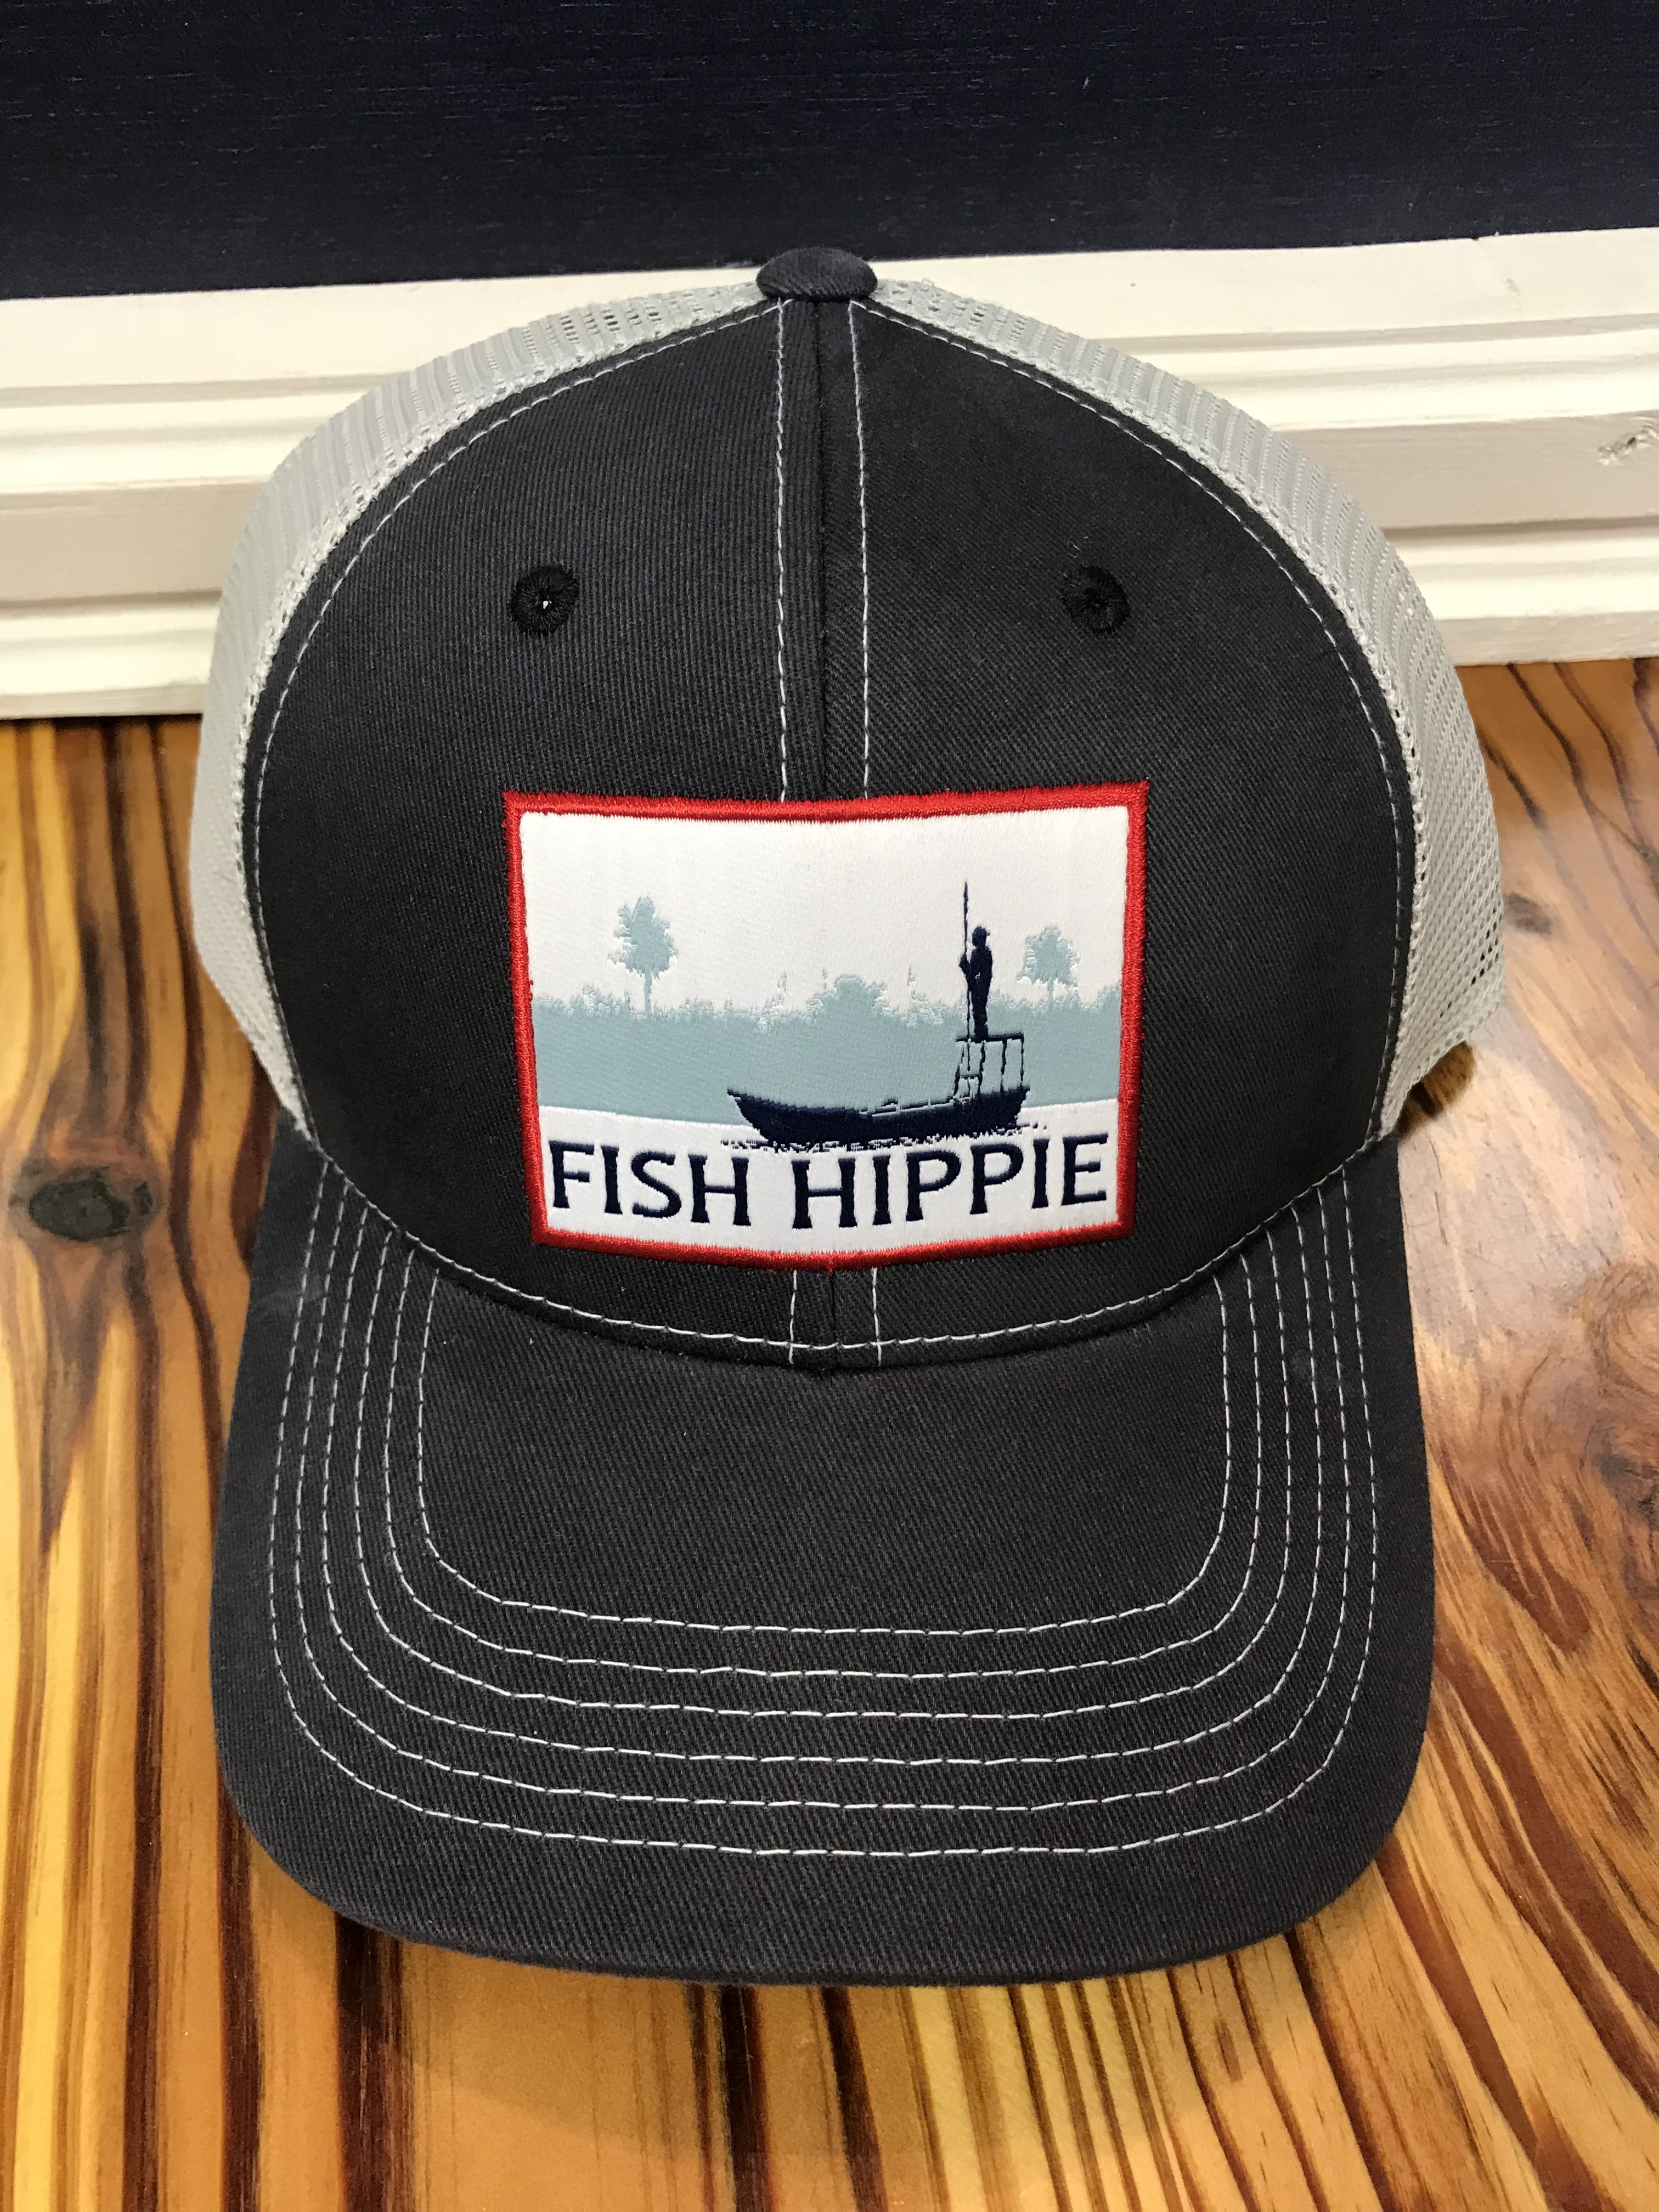 Fish Hippie Flats Dream Mesh Back Trucker Hat Navy - AG Outfitters NC 7bfadfcb9f7